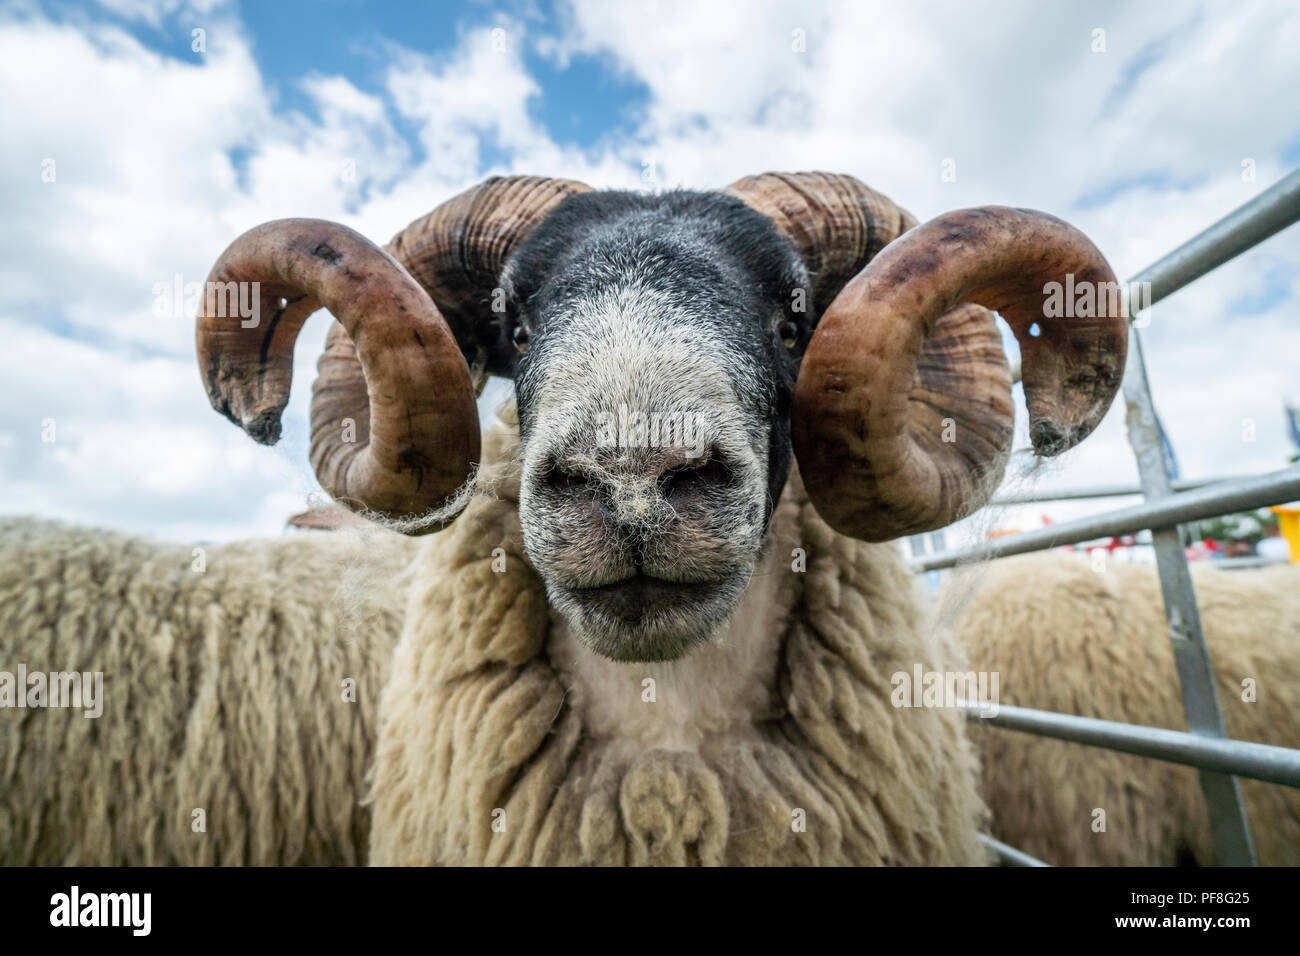 Scottish Blackface sheep on display in the  display at the Northumberland County Show 2018, Bywell, Northumberland, England - Stock Image